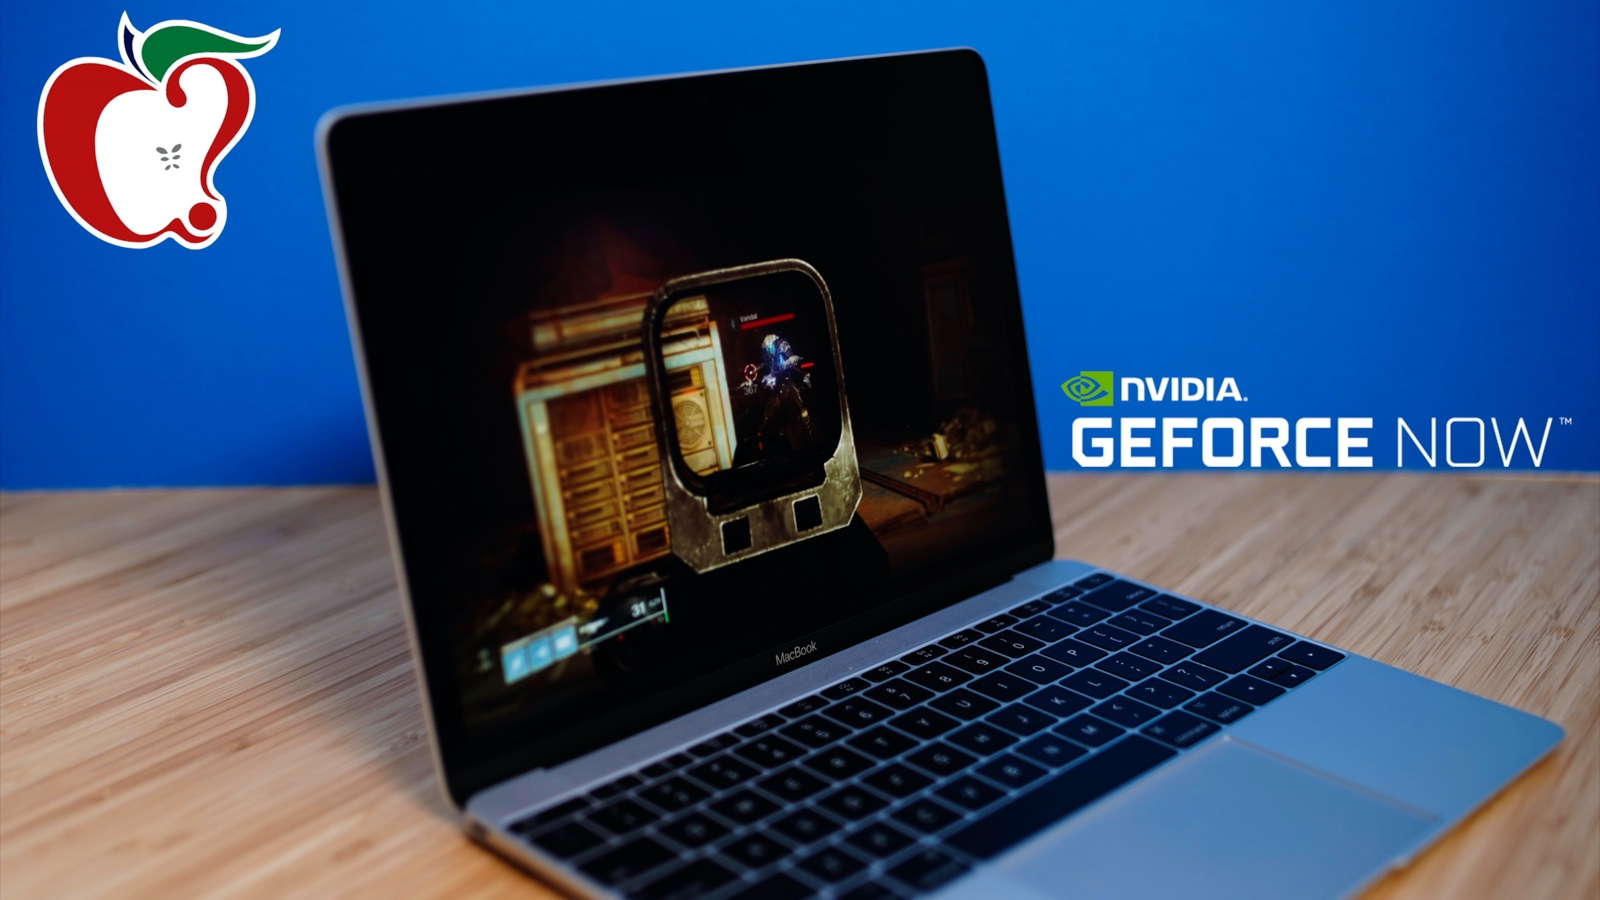 Hands-On With NVIDIA's GeForce Now Streaming Game Service - MacRumors